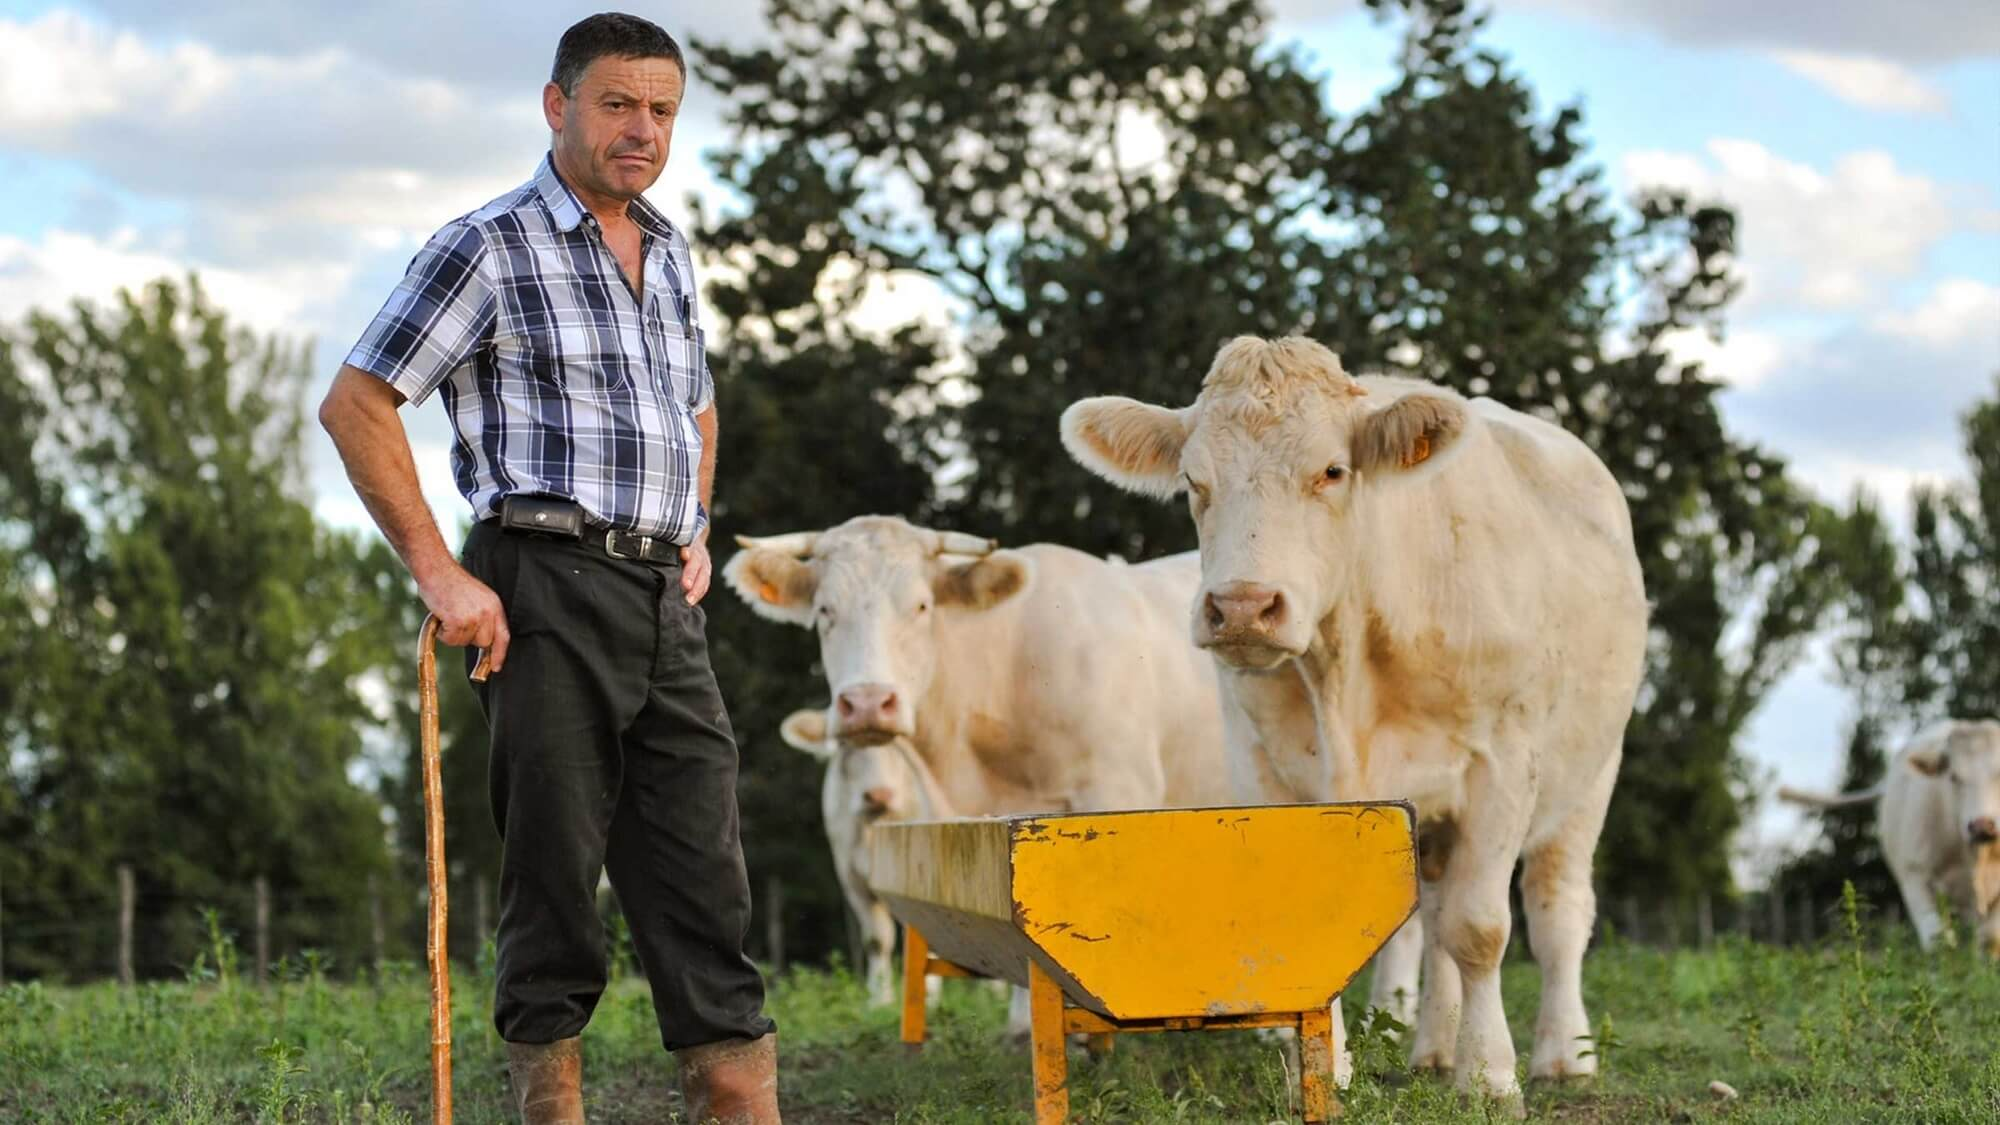 Greenpeace Urges New Zealand to Protect Climate By Banning New Dairy Farms